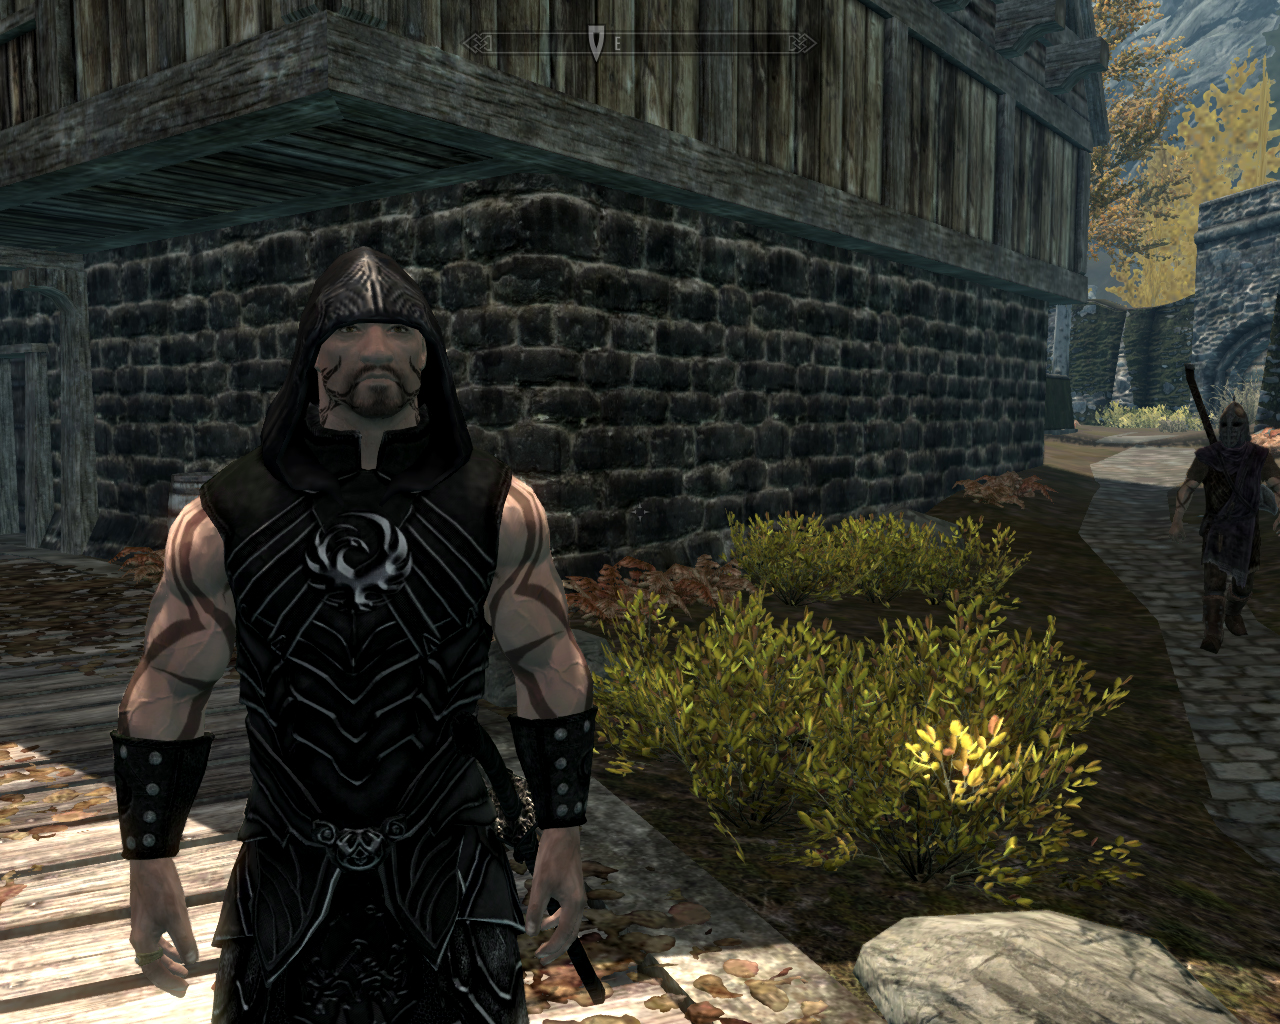 Black gloves skyrim -  Hide Gauntlets Light Retexture At Skyrim Nexus Mods And Community